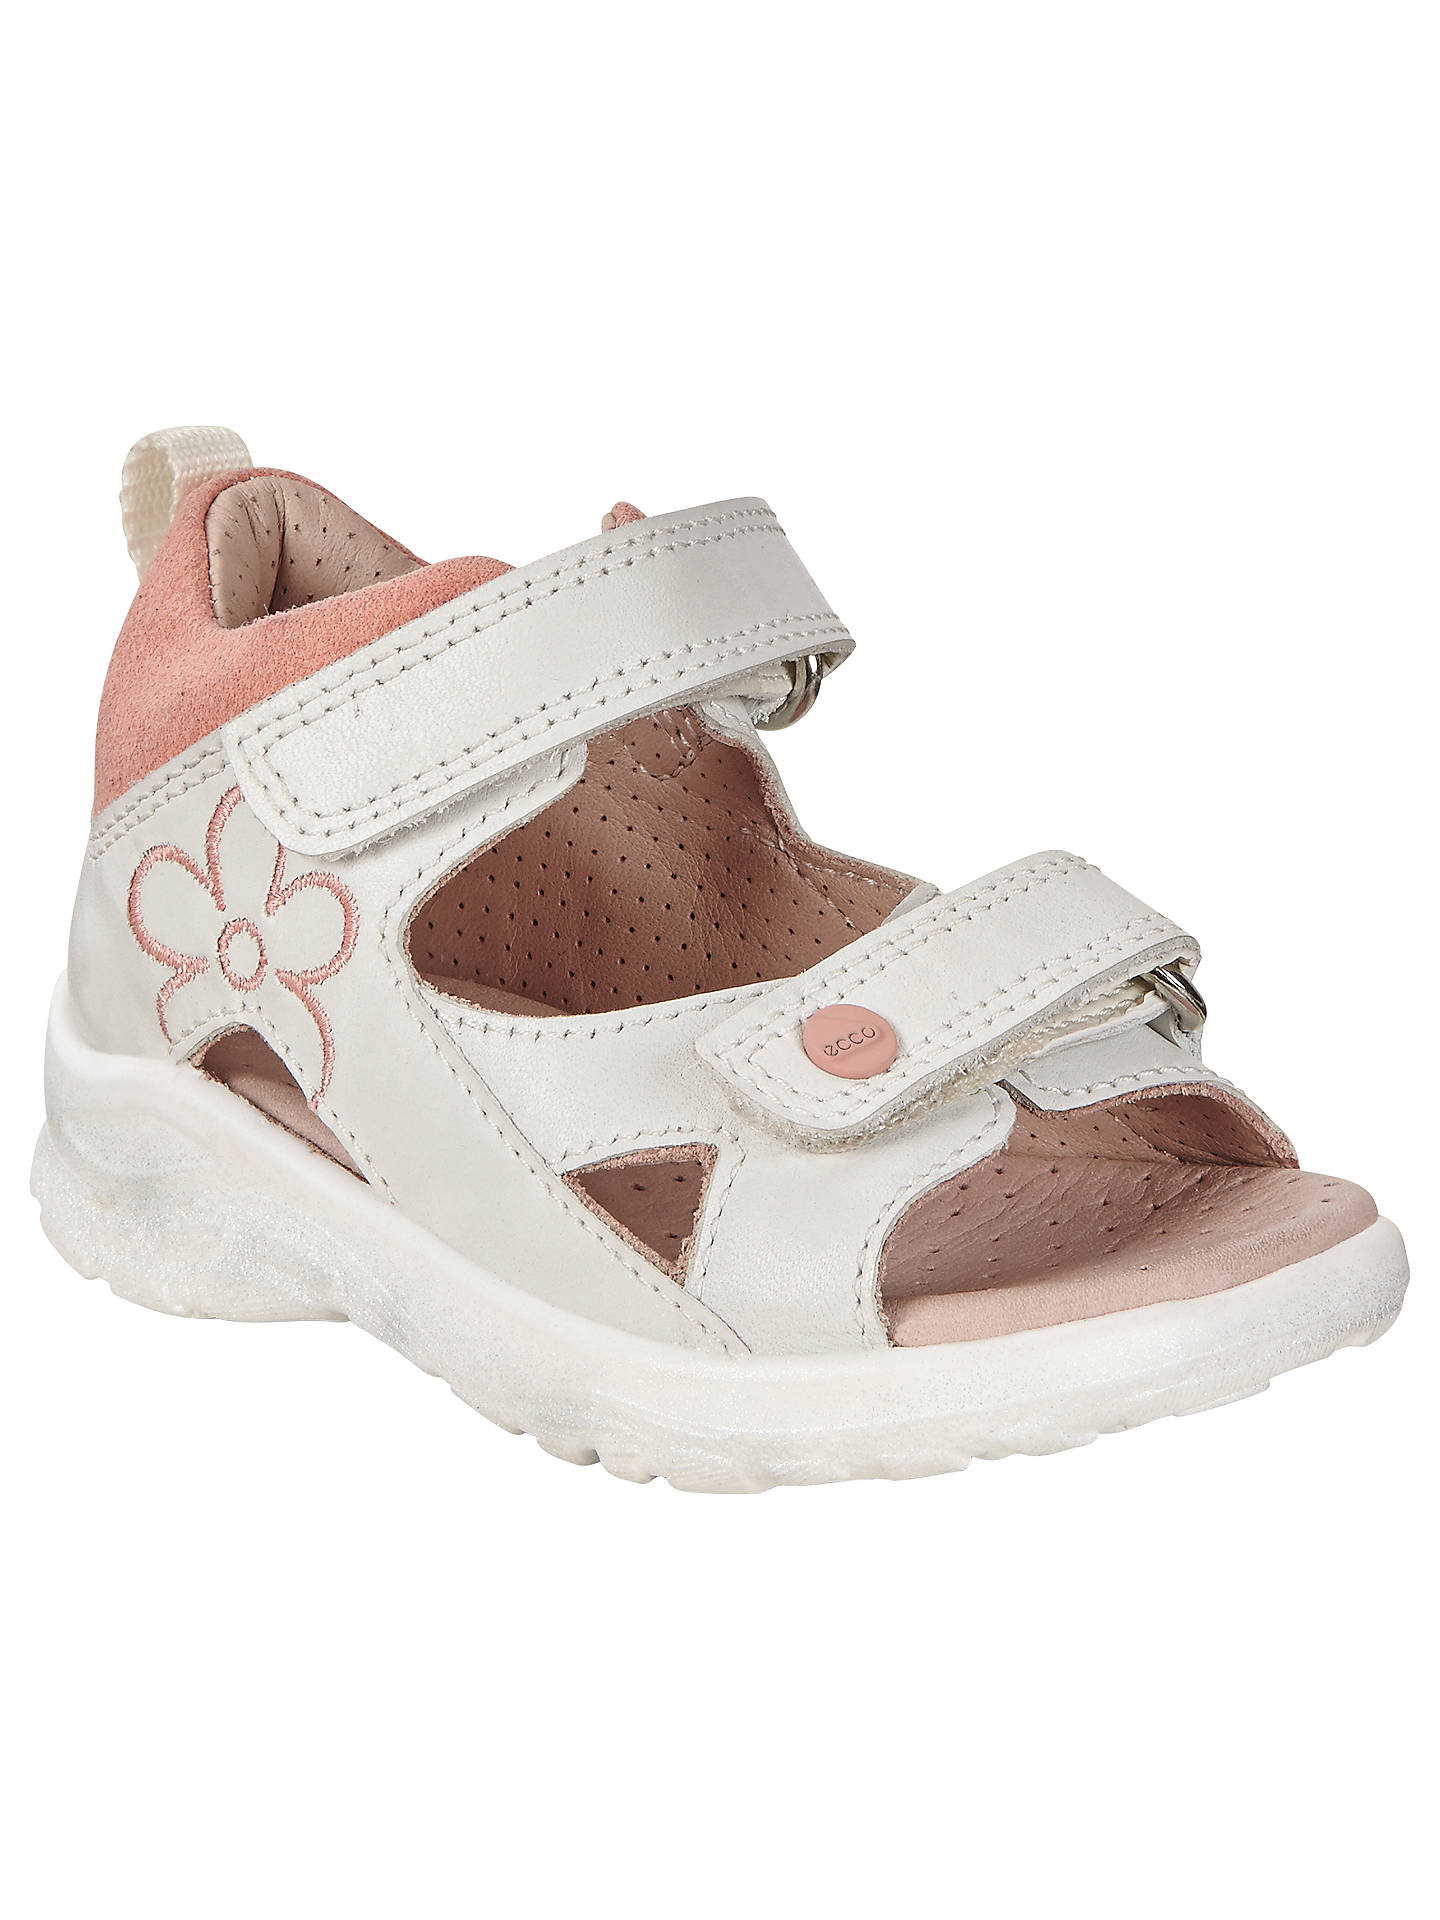 9bb08812518d3 Buy ECCO Peekaboo Leather Sandals, White/Pink, 20 Online at johnlewis.com  ...